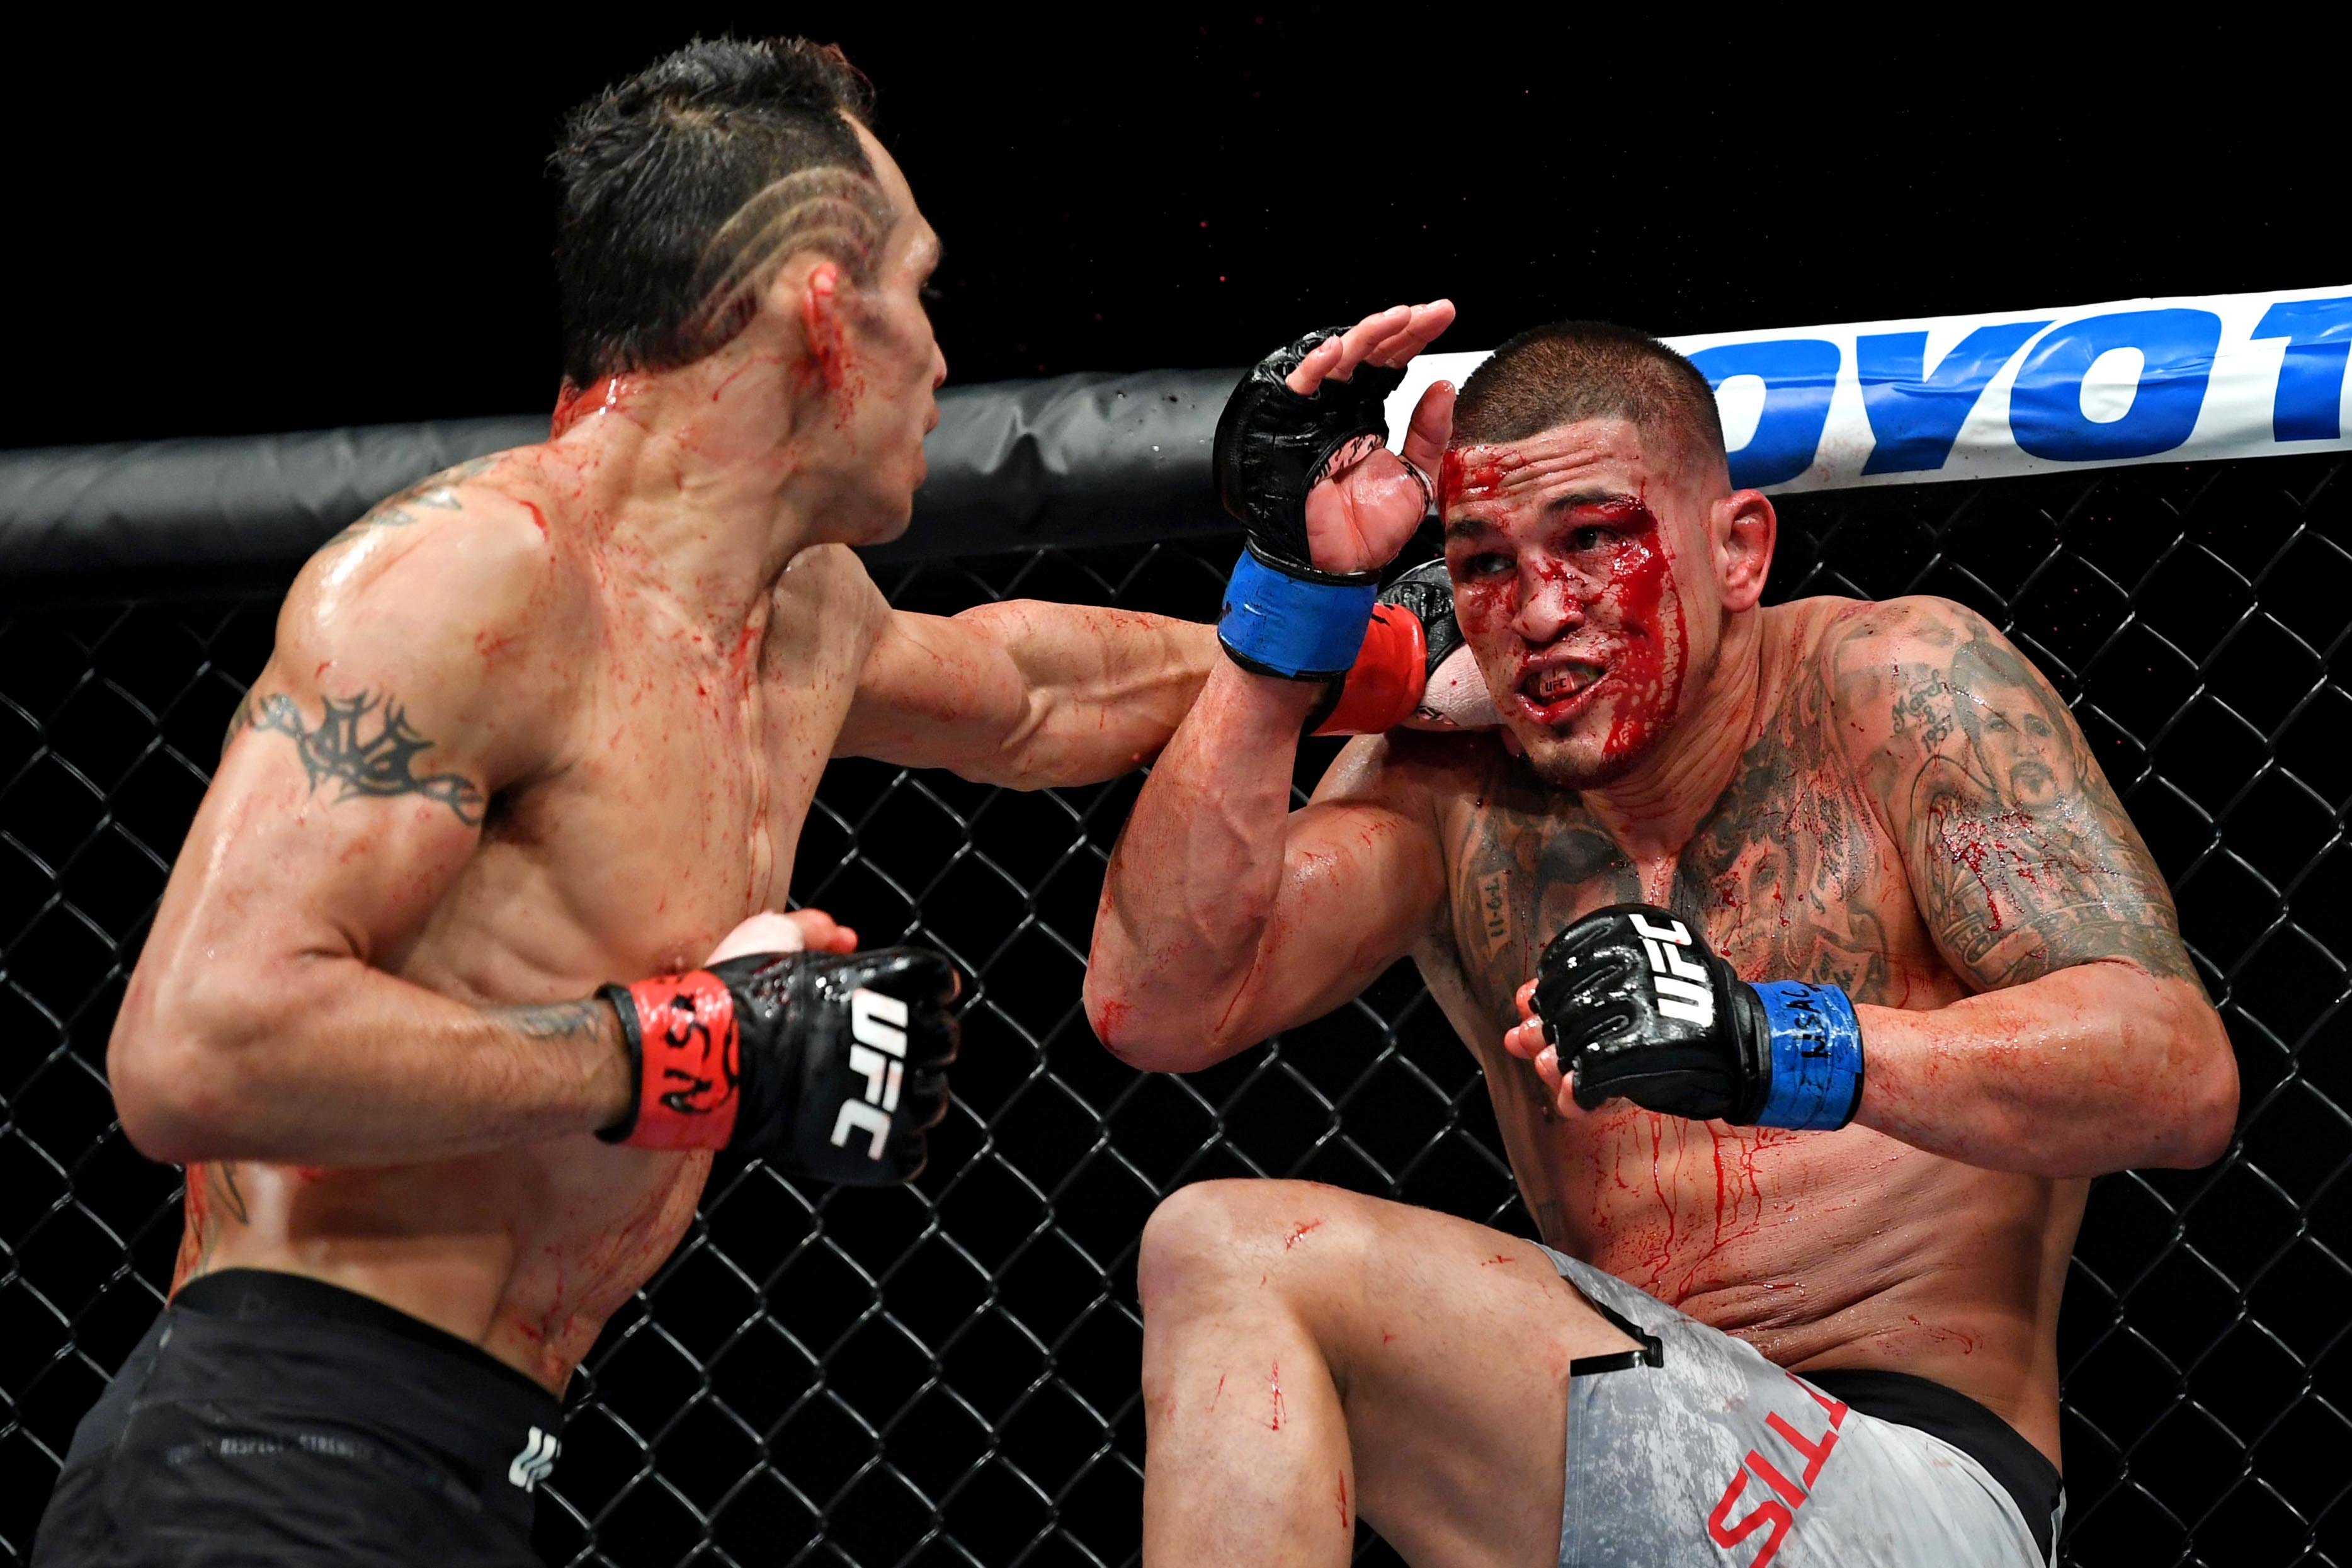 video review : Tony Ferguson versus Anthony Pettis at UFC 229